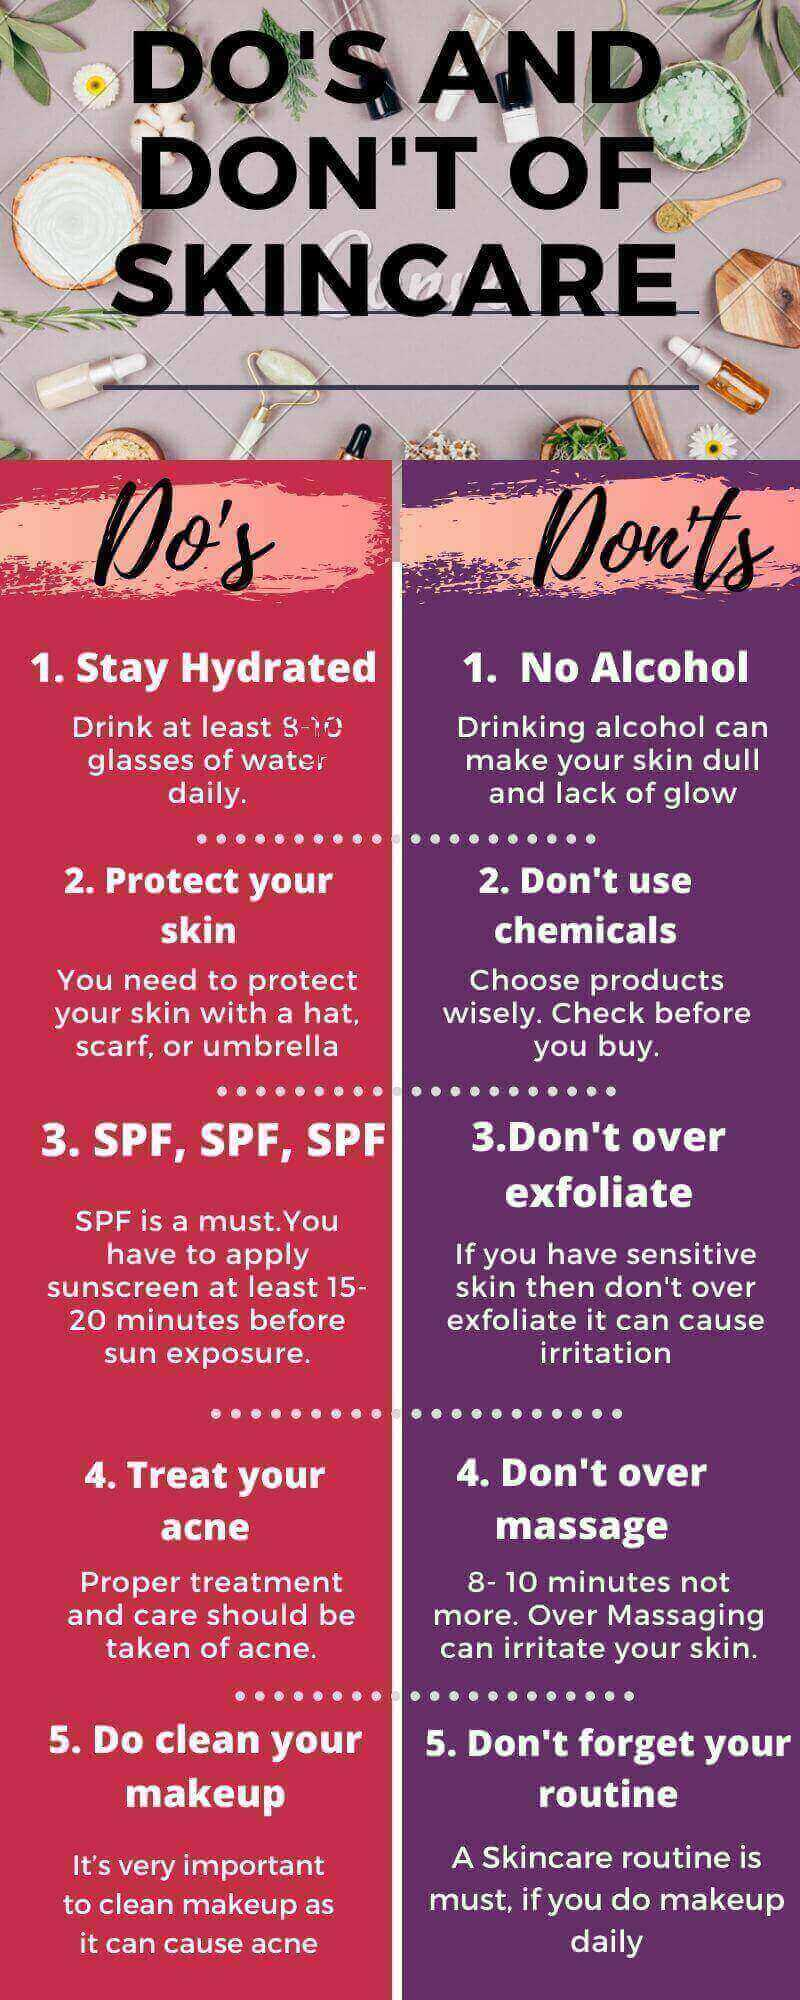 Do's and Don'ts of skincare